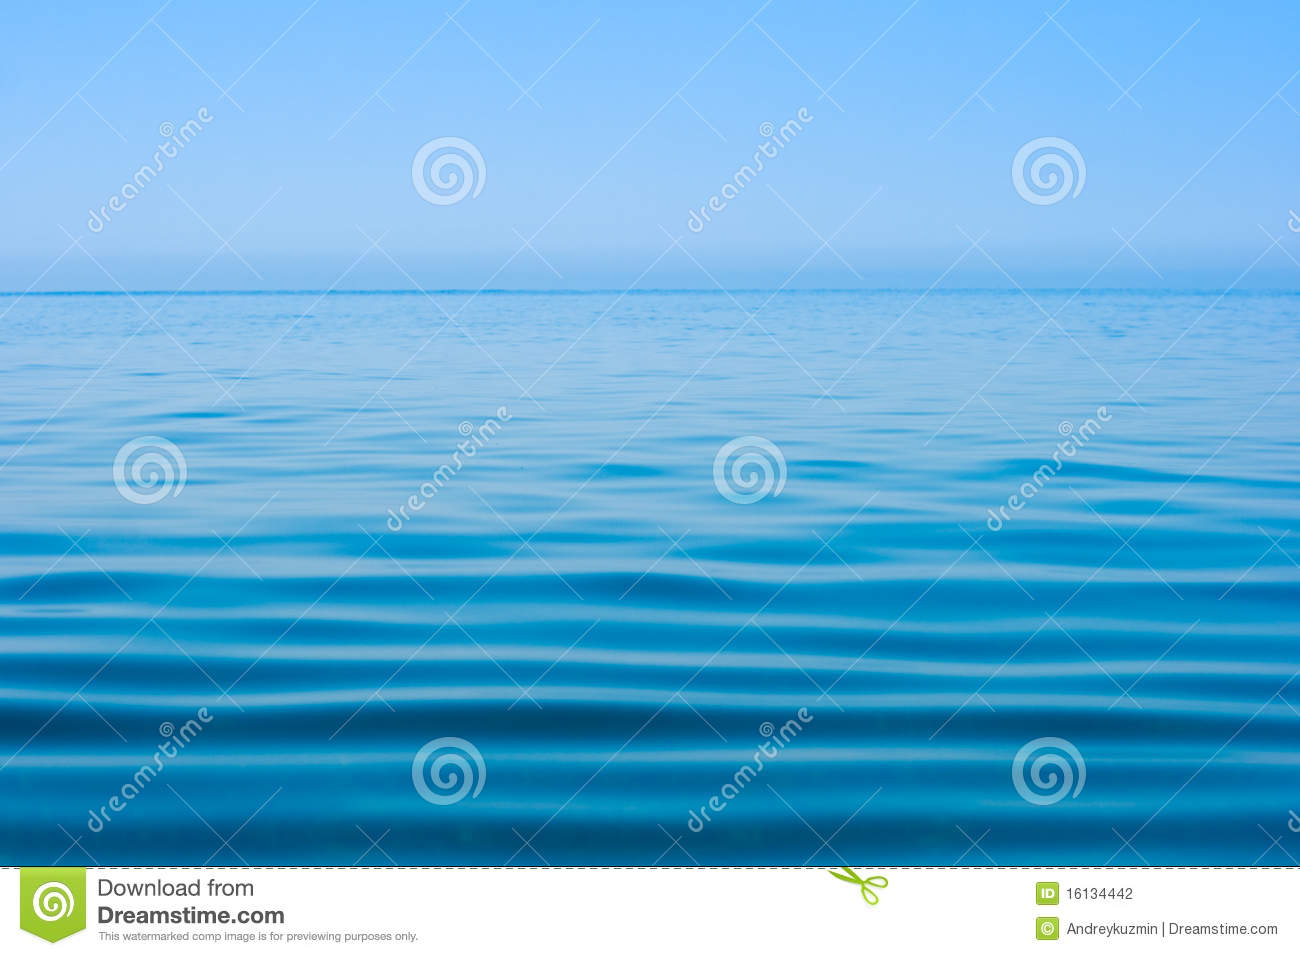 Still calm sea or ocean water surface and horizon